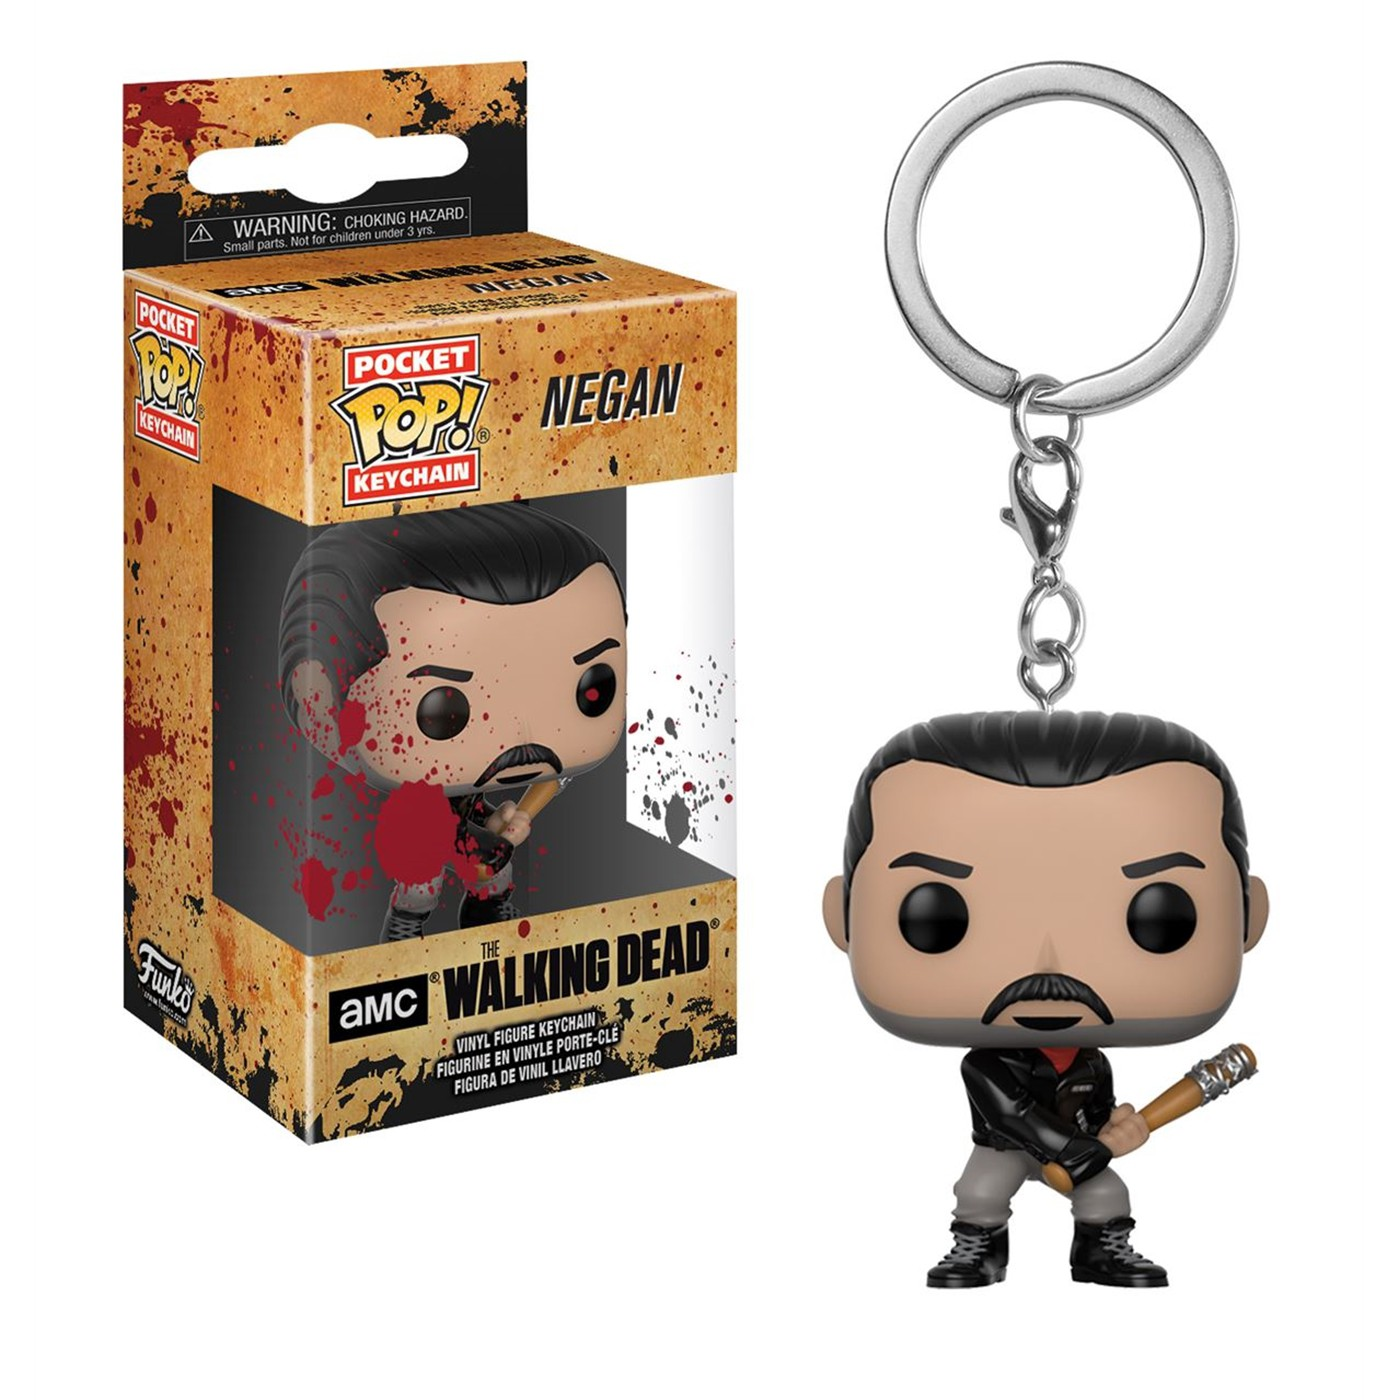 Walking Dead Negan Pocket Pop Keychain